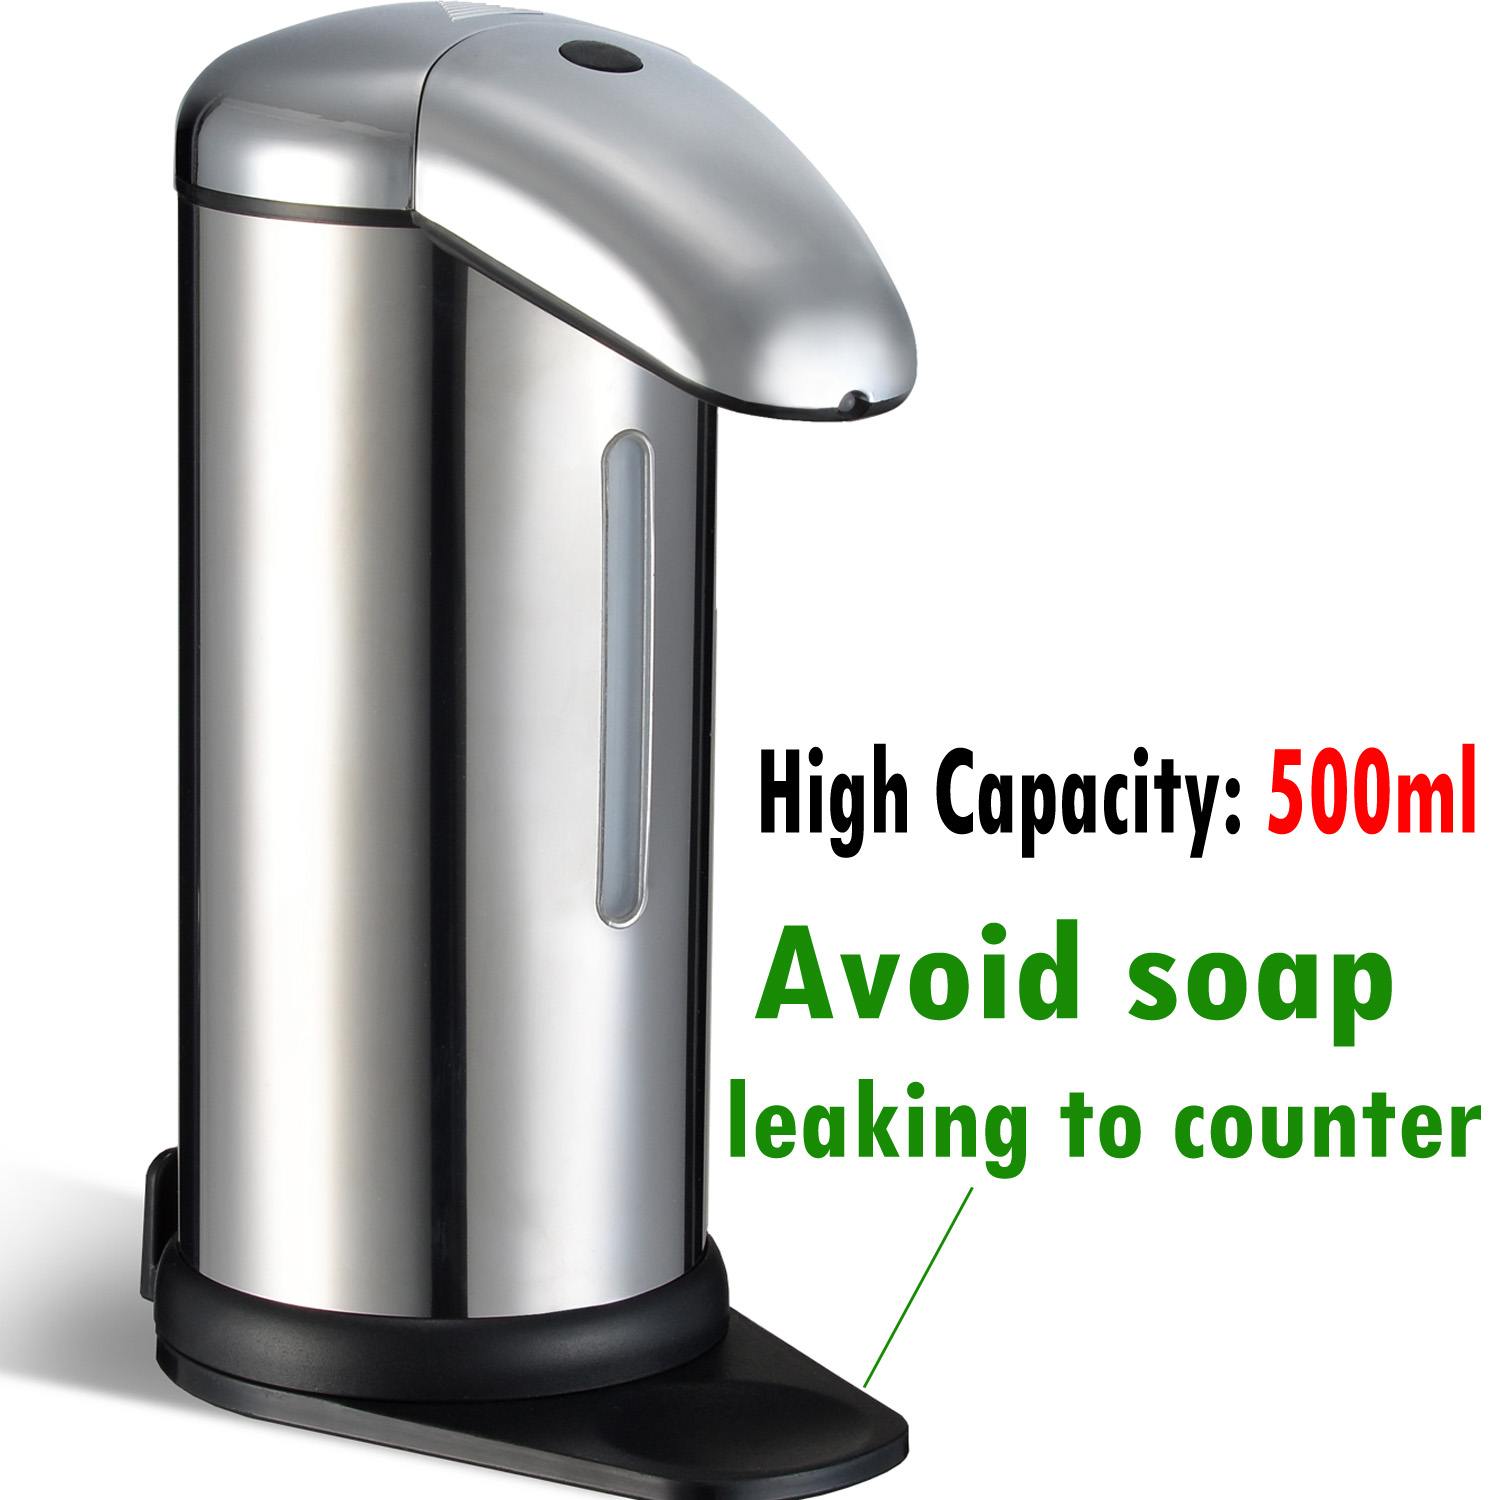 High Quality 500ml Automatic Soap Dispenser No Touch Touchless Sensor Kitchen Bathroom  Liquid Soap Dispenser